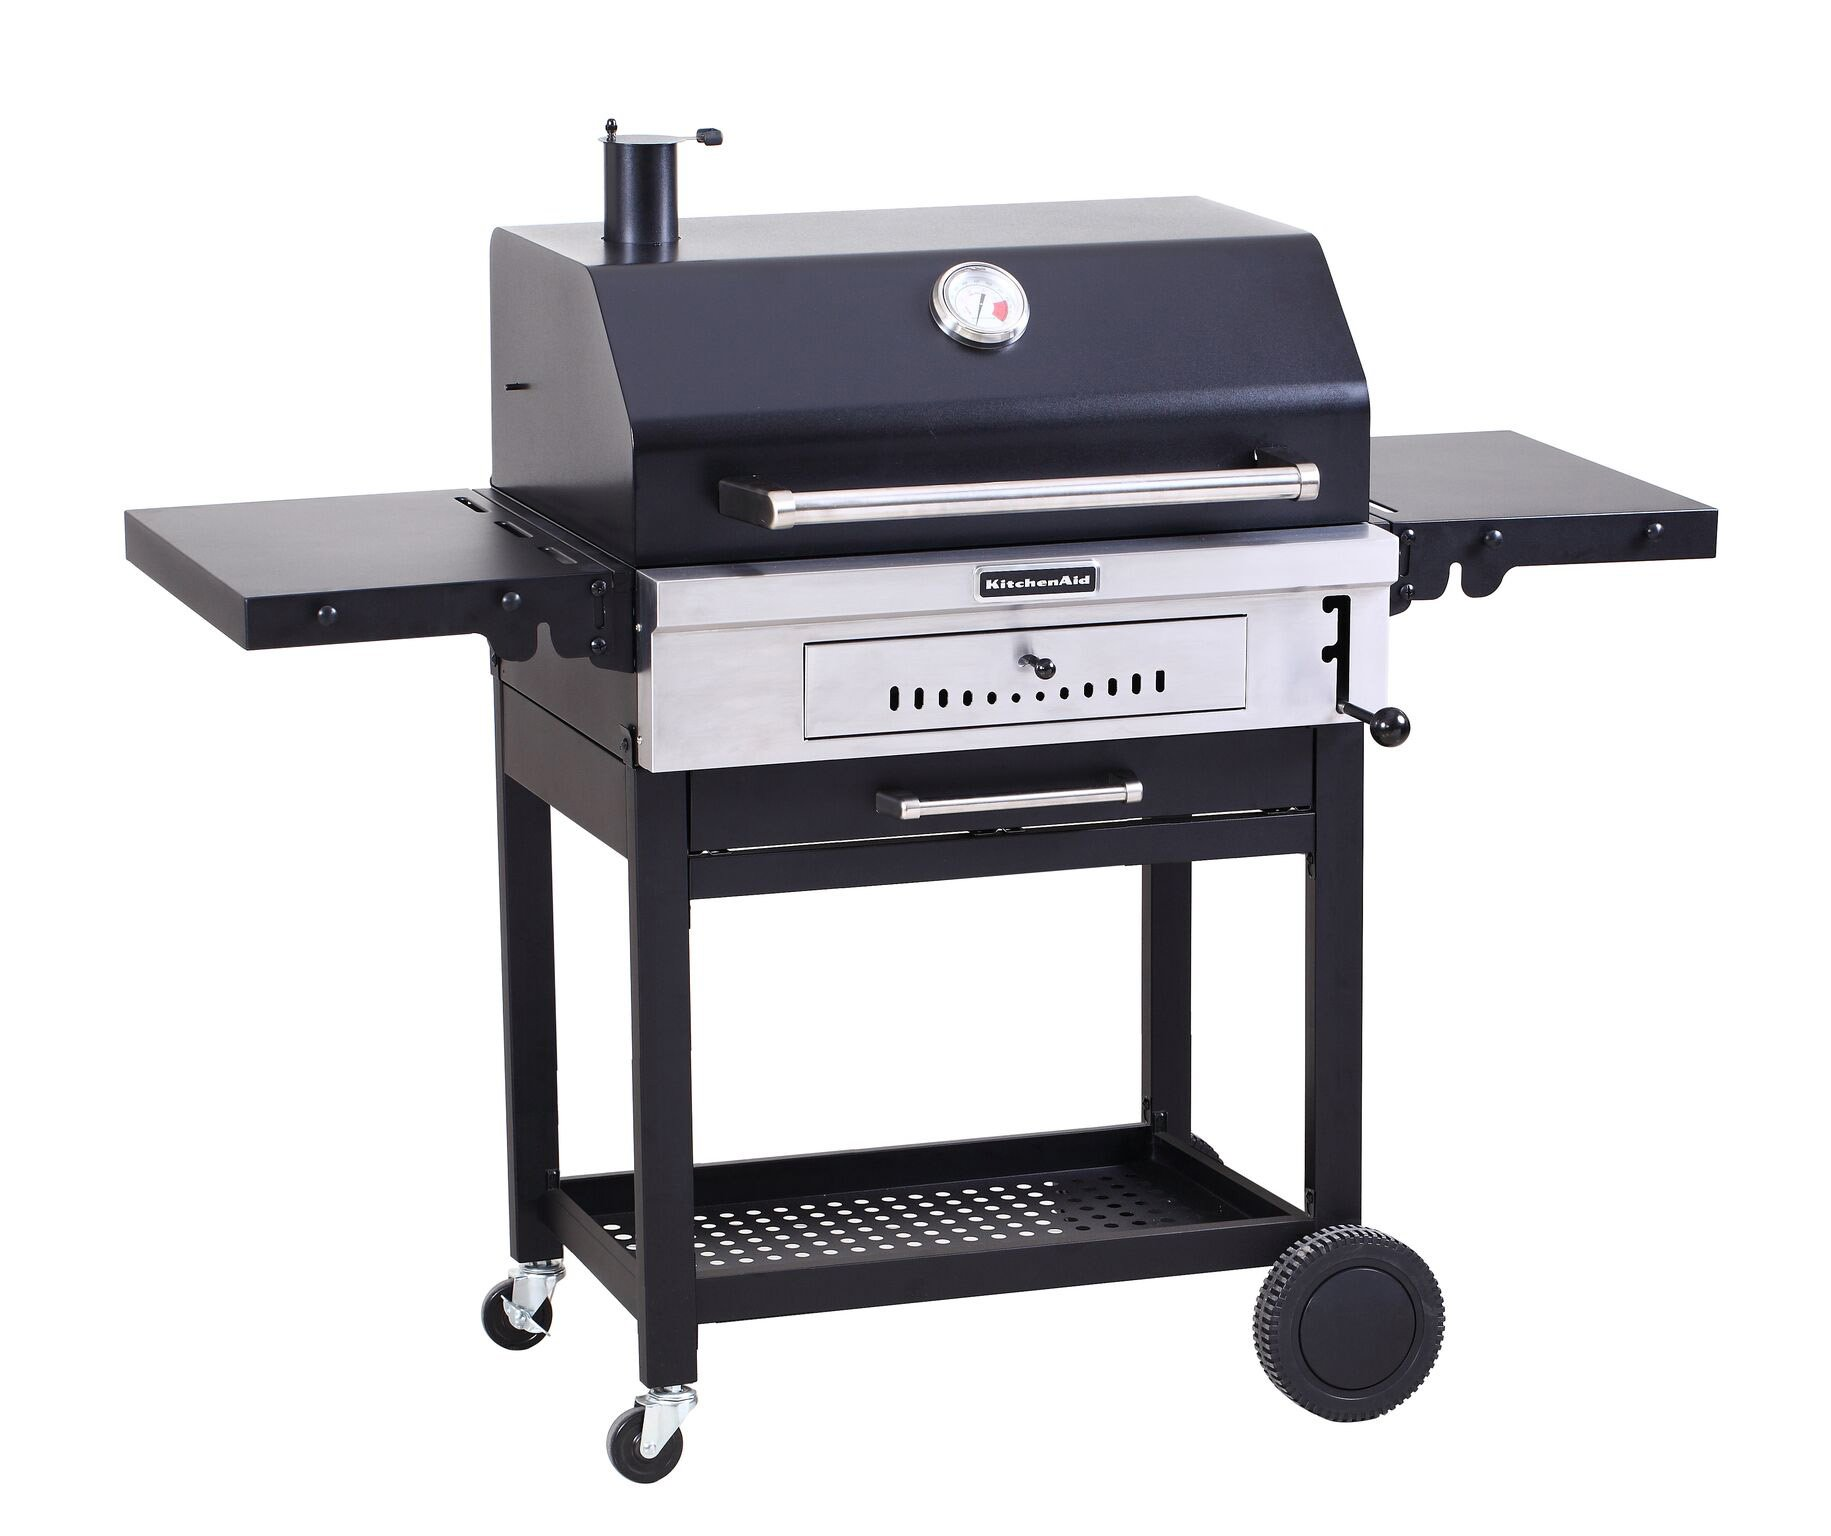 Cart Style Charcoal Grill In Black With